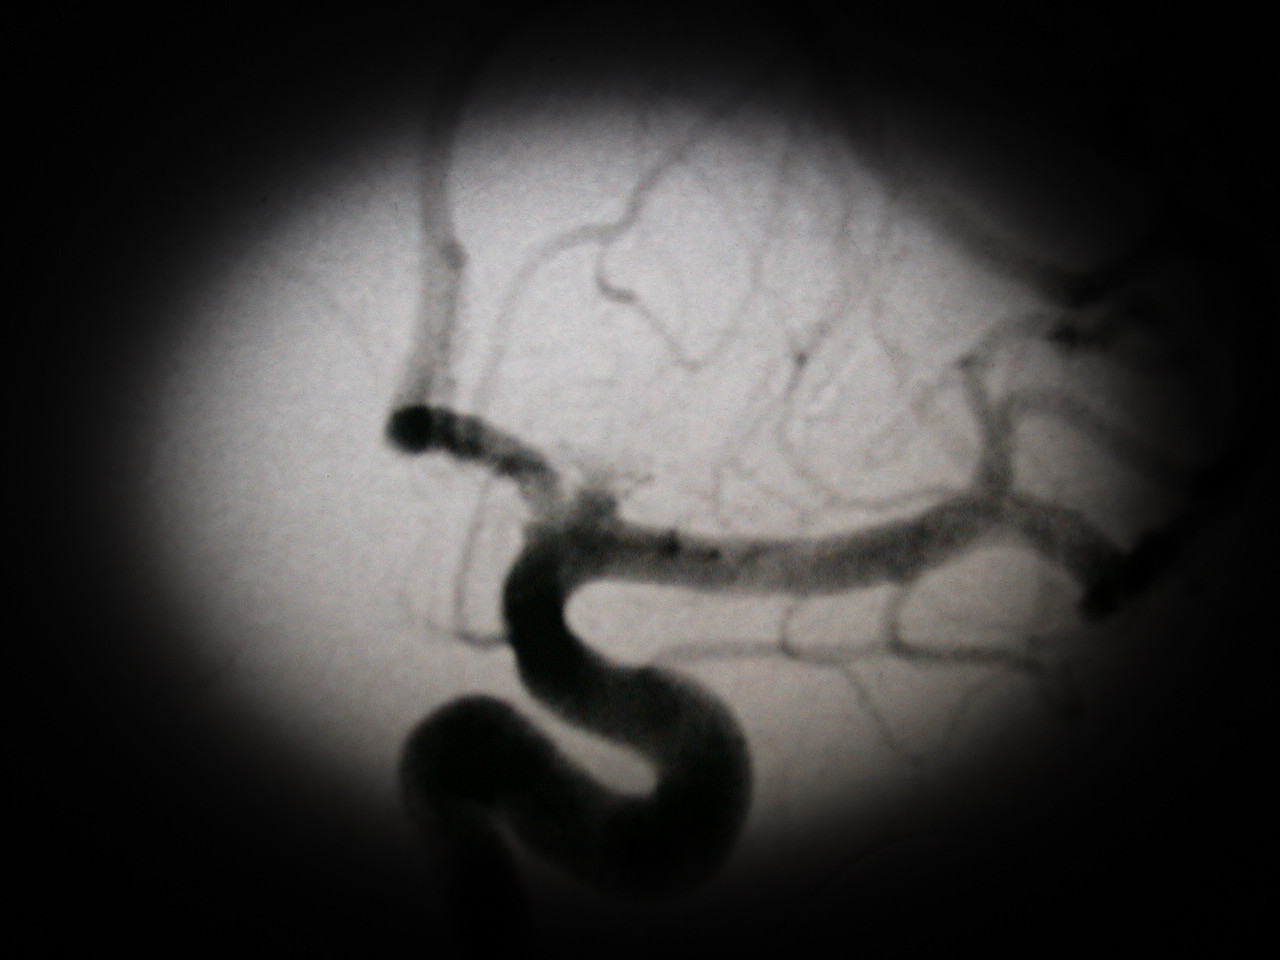 "<p class=""kbd_p""><i>Angiogram showing the rupture</i></p>  <p class=""kbd_p""><b>Wednesday 10/13, 9:30 AM - Day 1</b></p>  <p class=""kbd_p"">We arrive at UC hospital and Gina is taken for the angiogram within 15 minutes.</p>  <p class=""kbd_p""><b>Wednesday 10/13, 11:50 AM - Day 1</b></p>  <p class=""kbd_p"">Dr. Tew meets with me to discuss the angiogram results. Due to the location and size, the coiling approach is not an option. The only option is to do the pervasive external surgery which I authorize. They basically make an opening on the side of the skull, lift the brain, and place clips across the aneurysm. Gina is immediately taken to the OR for the operation.</p>  <p class=""kbd_p""><b>Wednesday 10/13, 4:45 PM - Day 1</b></p>  <p class=""kbd_p"">Dr. Tew comes into the surgical waiting room and tells us that after some difficulties they were able to clip the rupture. It re-ruptured as soon as they got in and due to the nature of the rupture they had a difficult time clipping it. The assistants were still closing so it would be a while before she was in recovery. During the surgery they had to temporarily stop the blood flow to the left side of her brain 3 times for 6 minutes each time (10 minutes is the max they can go).</p>  <p class=""kbd_p""><b>Wednesday 10/13, 8:00 PM - Day 1</b></p>  <p class=""kbd_p"">I'm allowed to go see her in the neurology intensive care unit (UC is one of the few hospitals that has an intensive care unit just for neurology patients- by the grace of God, Gina got the 8th of the 8 beds they have and two more aneurysms came in the same day (both unfortunately had to be redirected to other facilities). Given the difficulty of the surgery, I would not have wanted to be anywhere else. Gina is able to squeeze a finger with her left hand but that is about the only response at this point.</p>  <p class=""kbd_p""><b>Wednesday 10/13, 10:00 PM - Day 1</b></p>  <p class=""kbd_p"">Gina is moving a little more and able to move her toes on command. She can't open her eyes or do anything else but at least she is in there and still with us. It is impossible to put into words how overwhelming the past 24 hours have been.</p>"